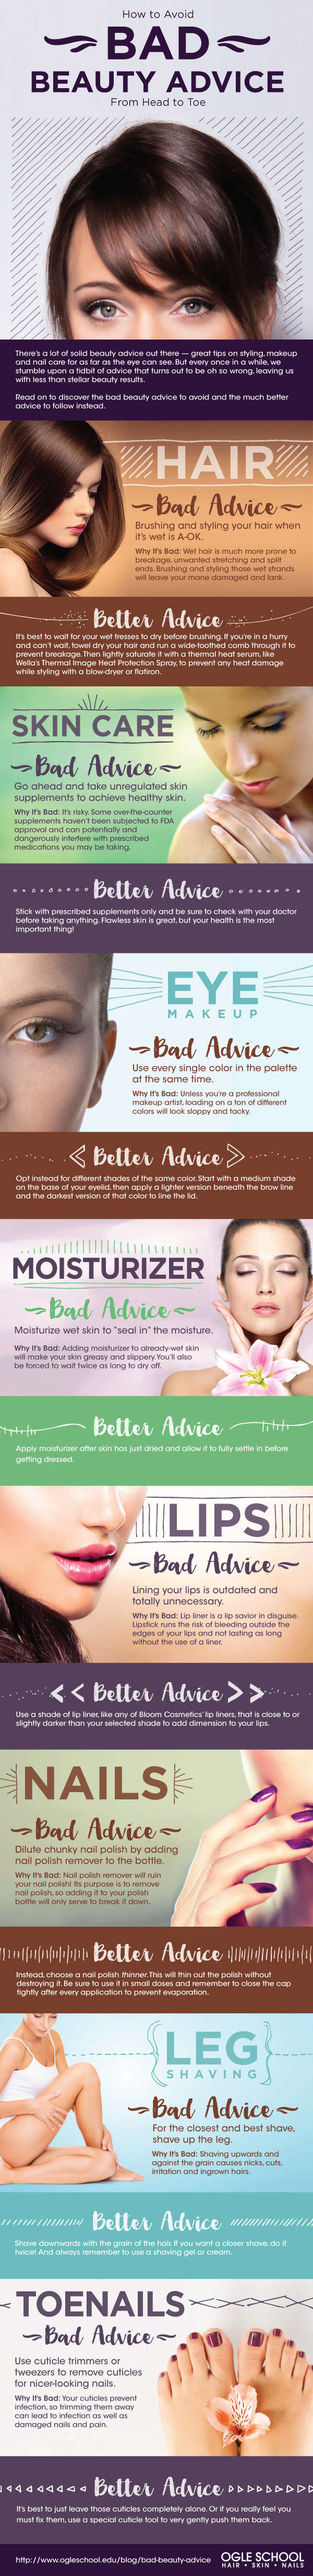 How to Avoid Bad Beauty Advice from Head to Toe #infographic